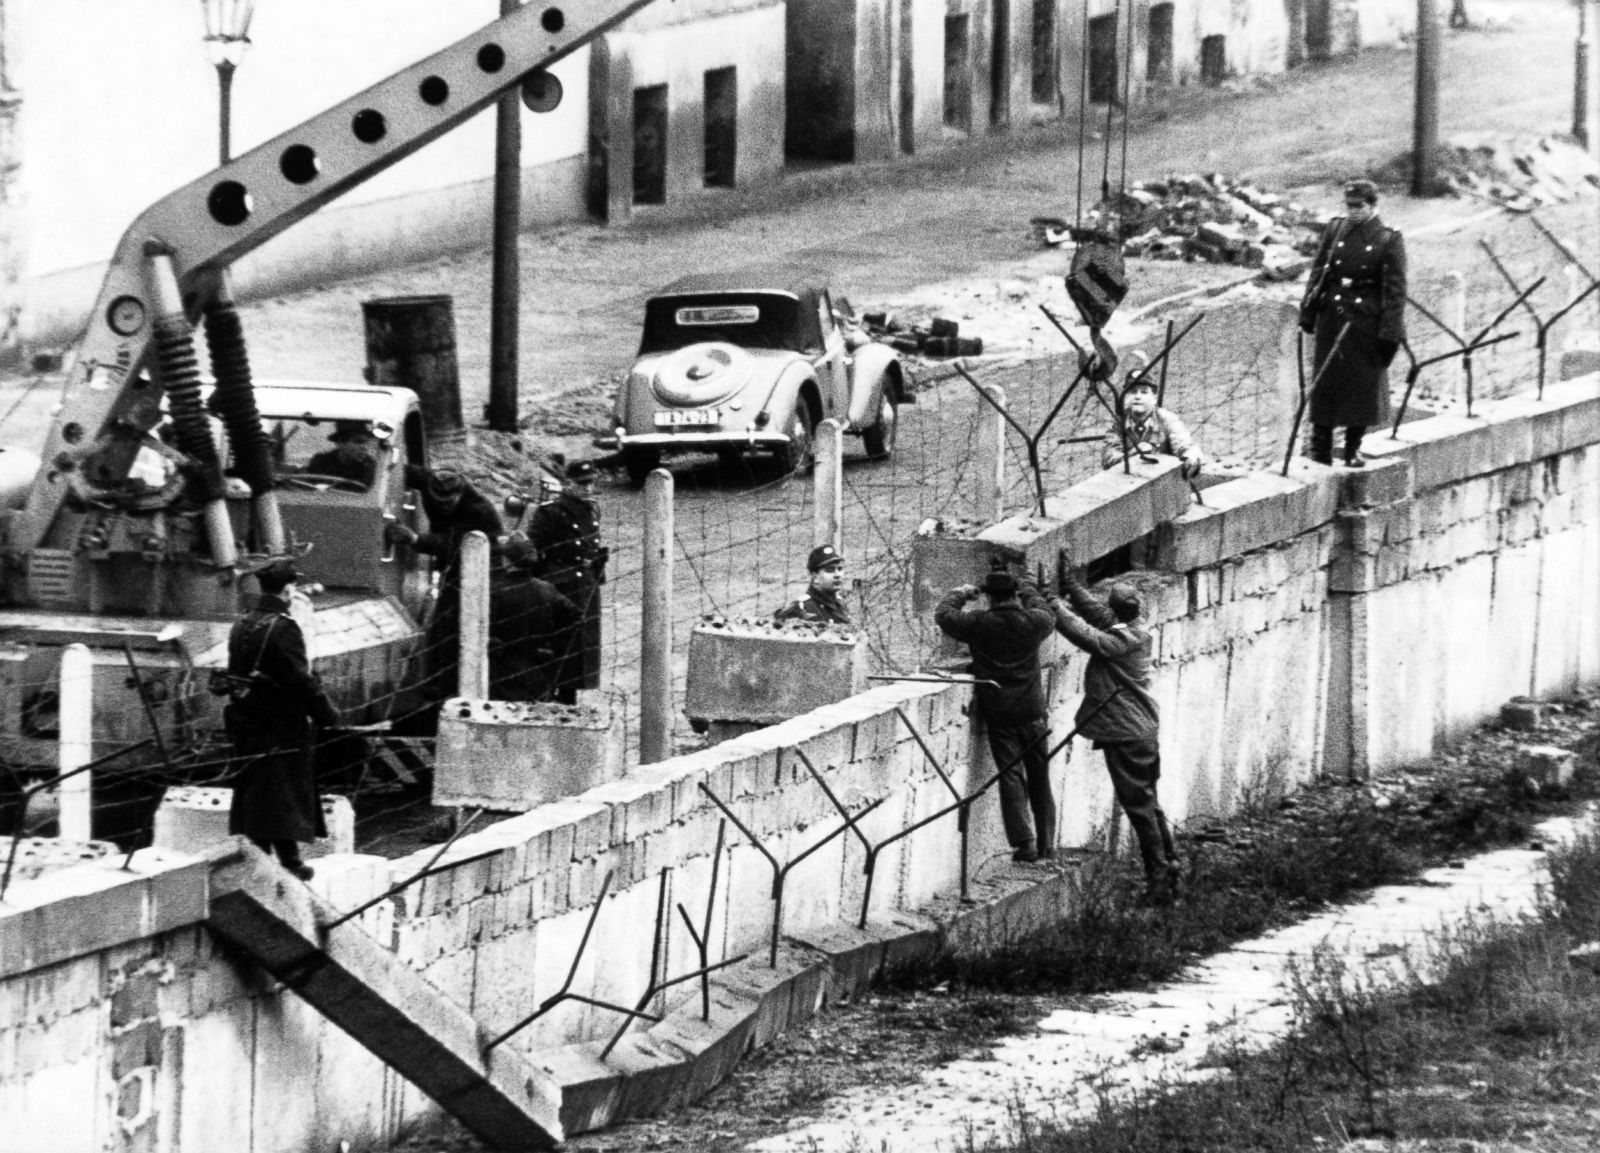 fall of the berlin wall 25th anniversary photos image 1